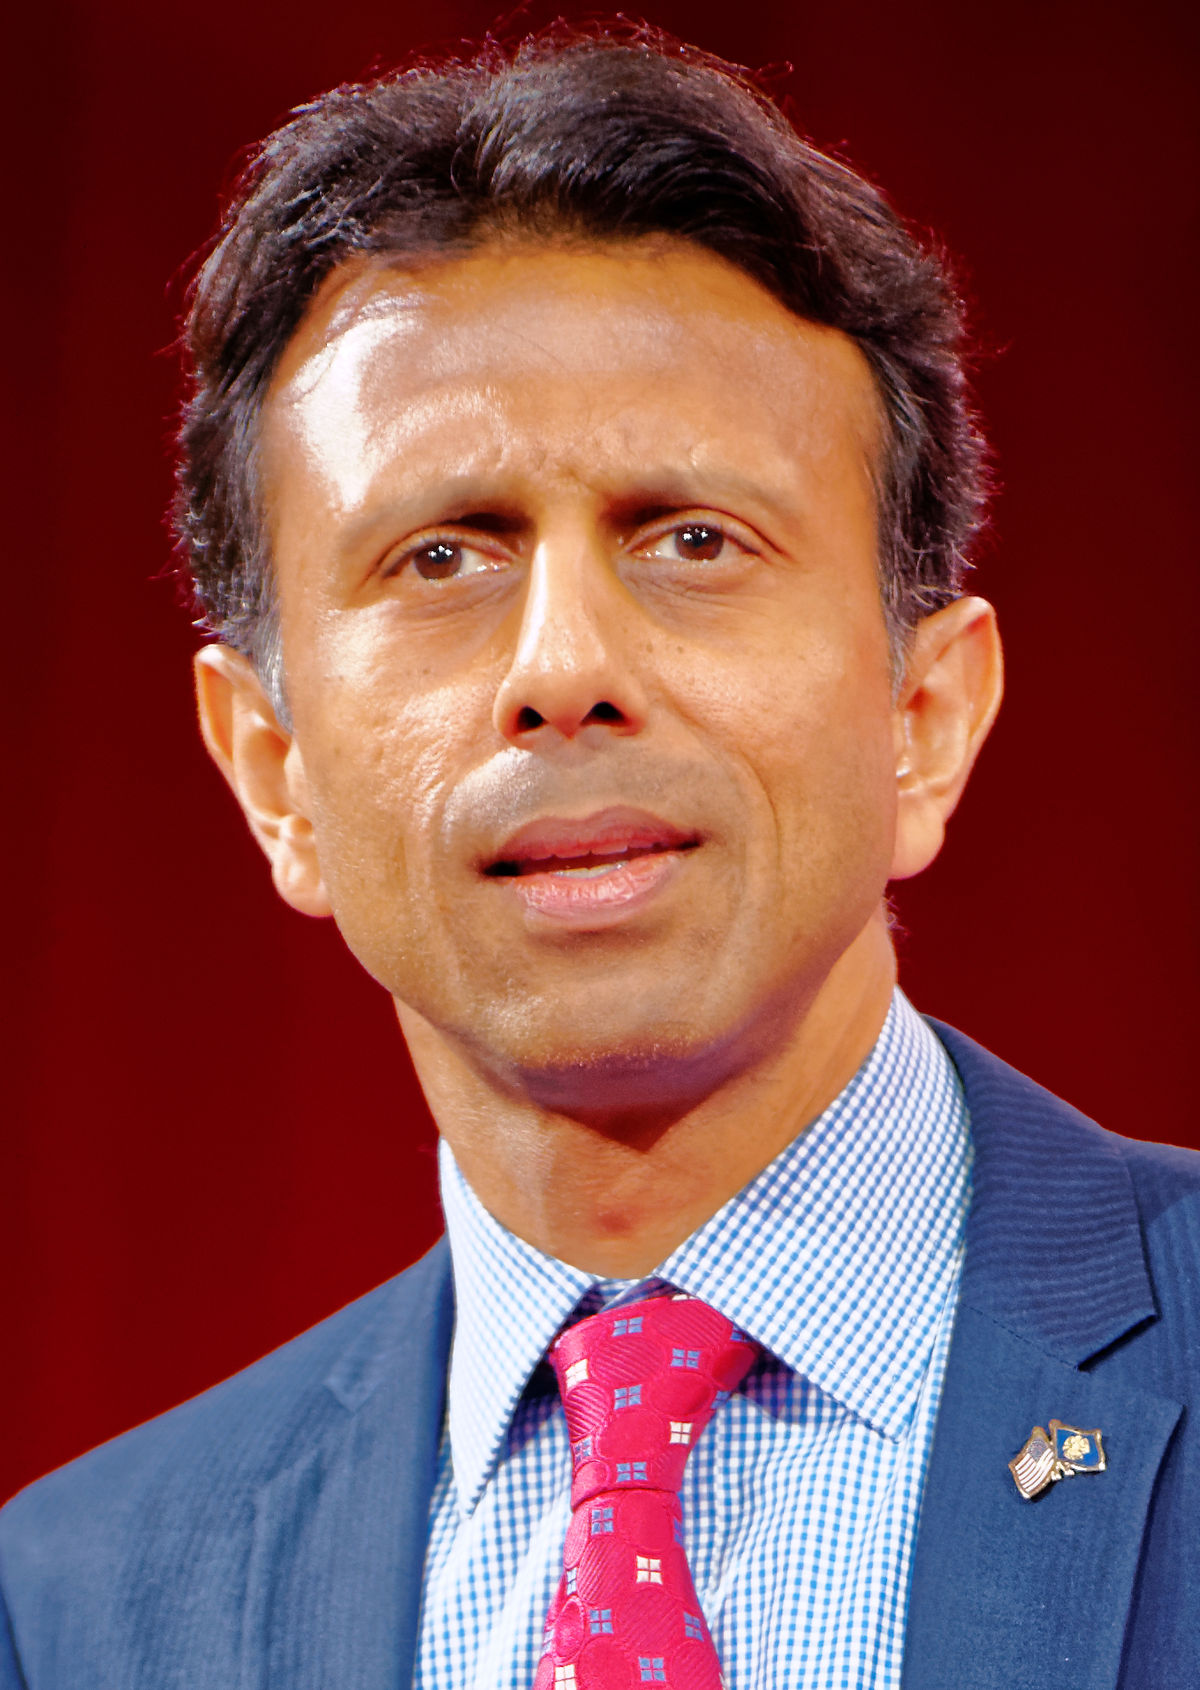 """bobby jindal oxford thesis Bobby jindal, the fifty-fifth governor of louisiana, served from 2008 to  from the  university of oxford, where the subject of his thesis was """"a."""